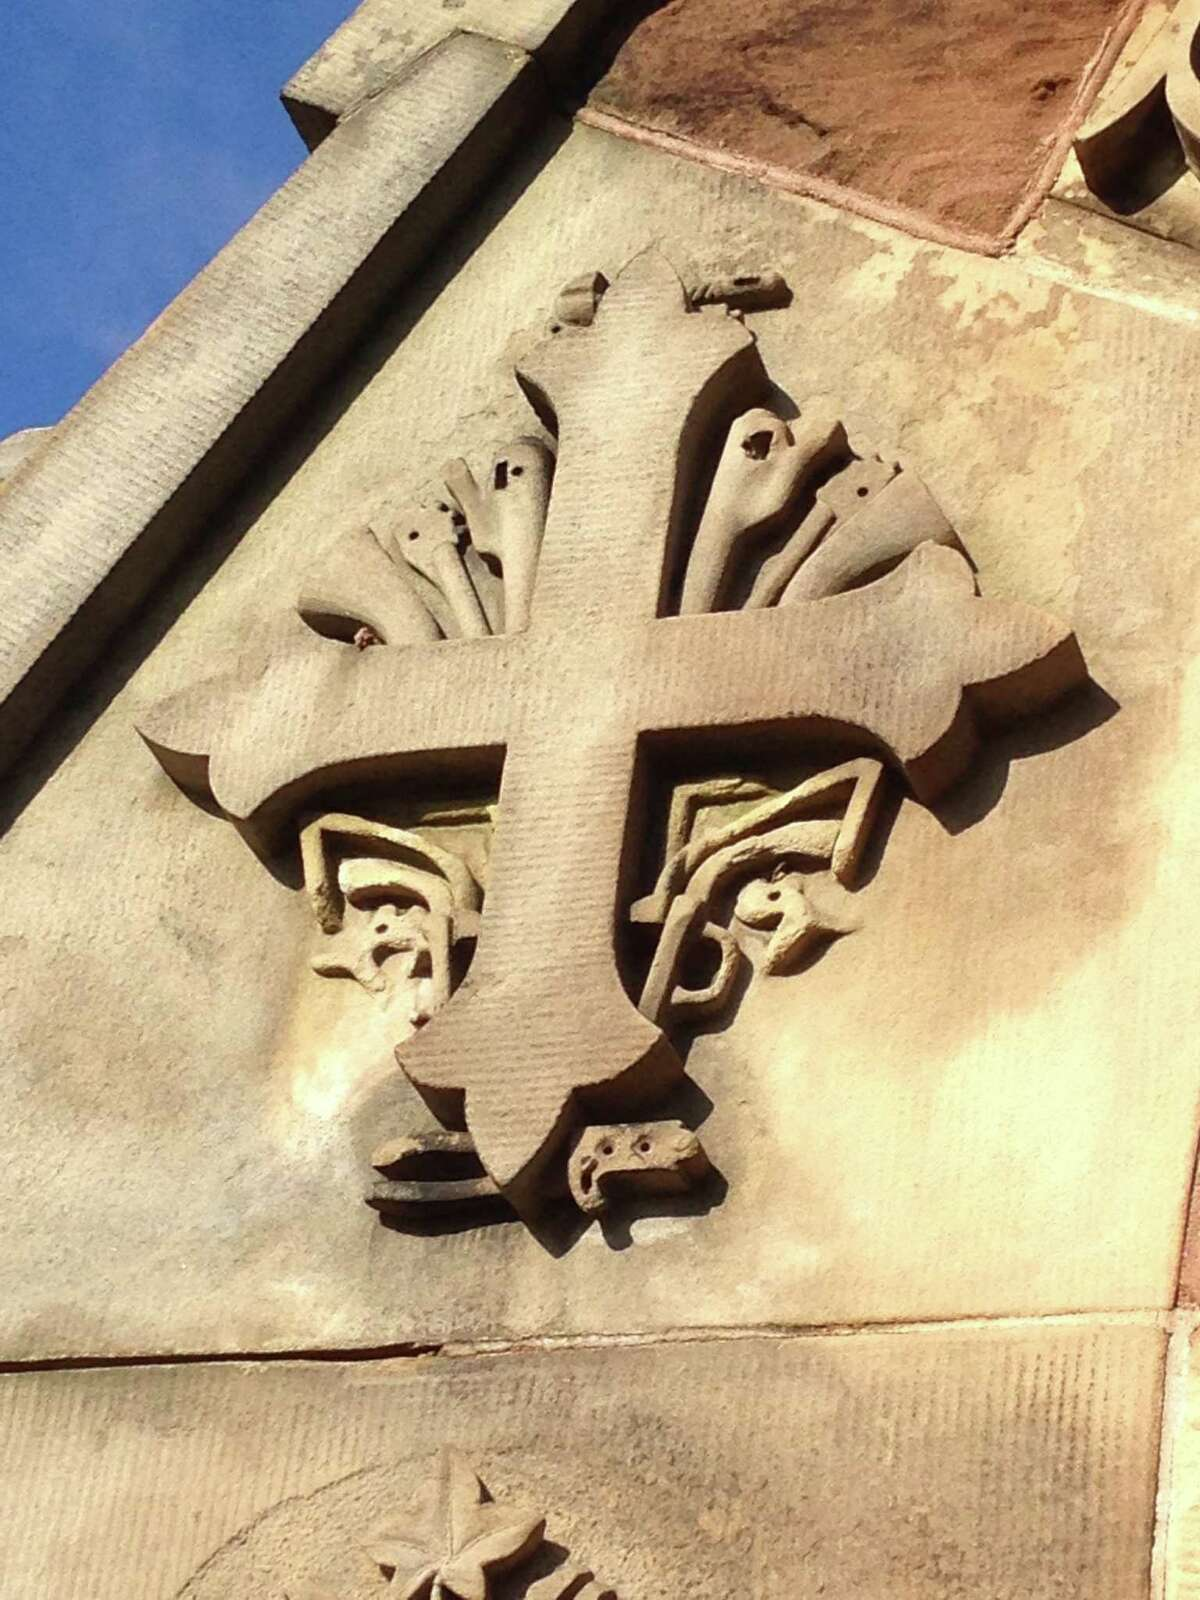 In this Dec. 17, 2014 photo, a detail of a revolver carved into the entrance of the Church of the Good Shepherd, which was built by the widow of Samuel Colt, is seen in Hartford, Conn.